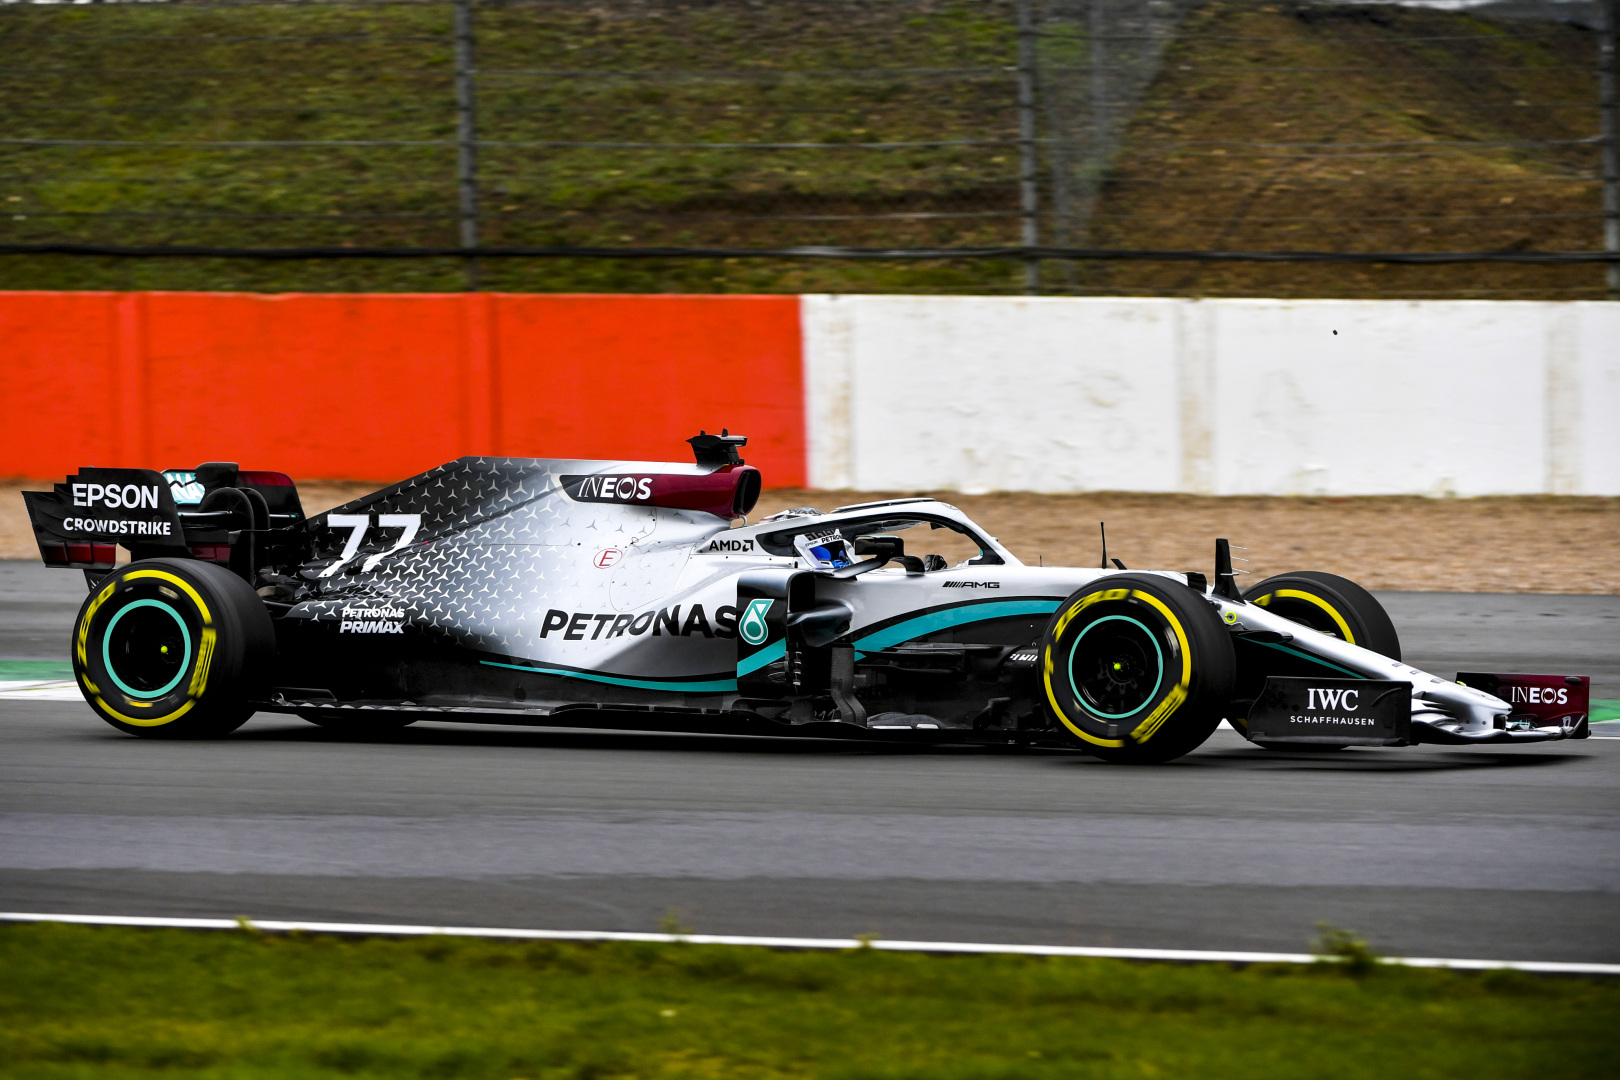 Mercedes technical director outlines 'adventurous' developments - Speedcafe